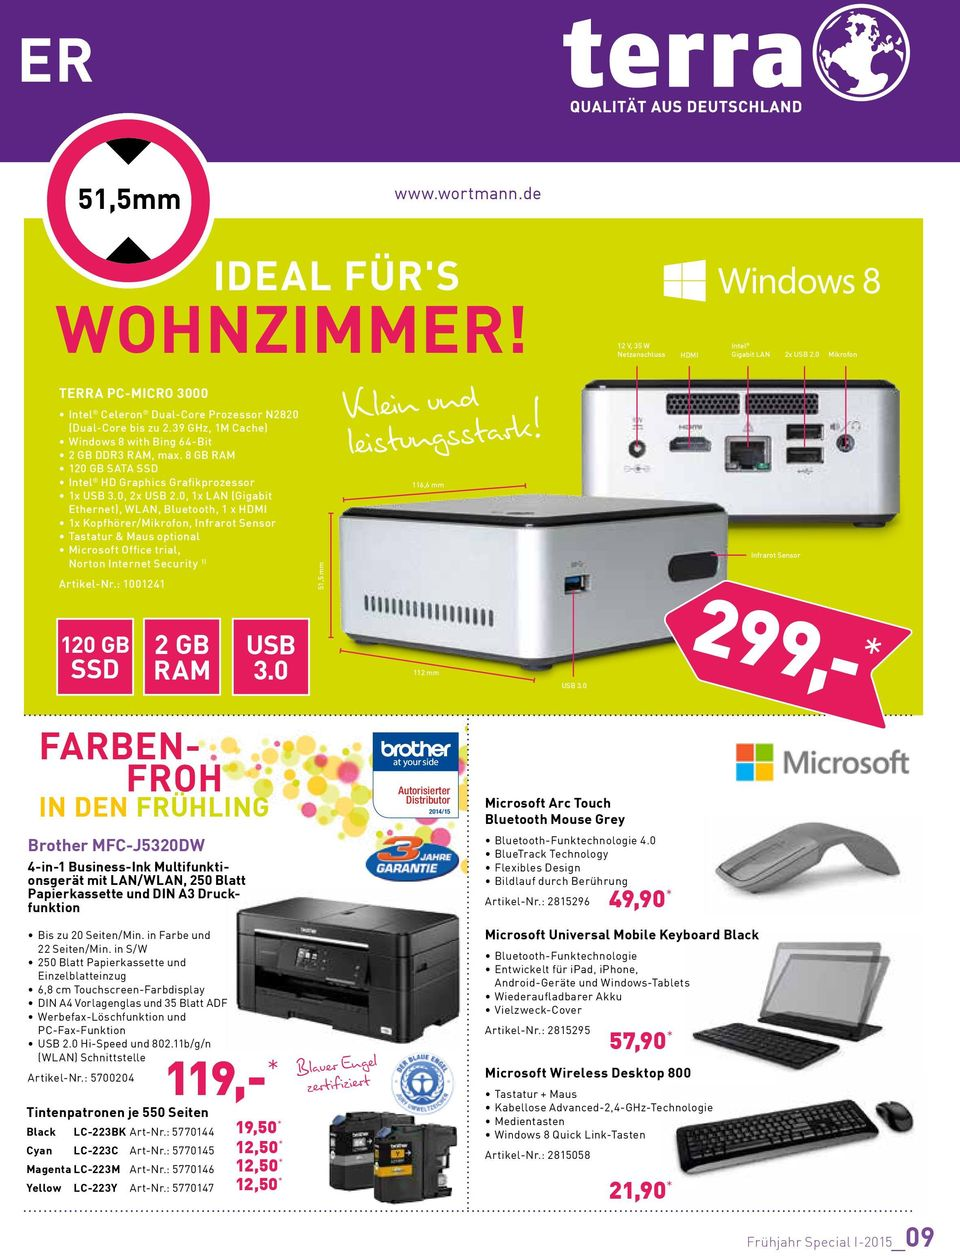 0, 1x LAN (Gigabit Ethernet), WLAN, Bluetooth, 1 x HDMI 1x Kopfhörer/Mikrofon, Infrarot Sensor Tastatur & Maus optional Microsoft Office trial, Norton Internet Security 1) Artikel-Nr.